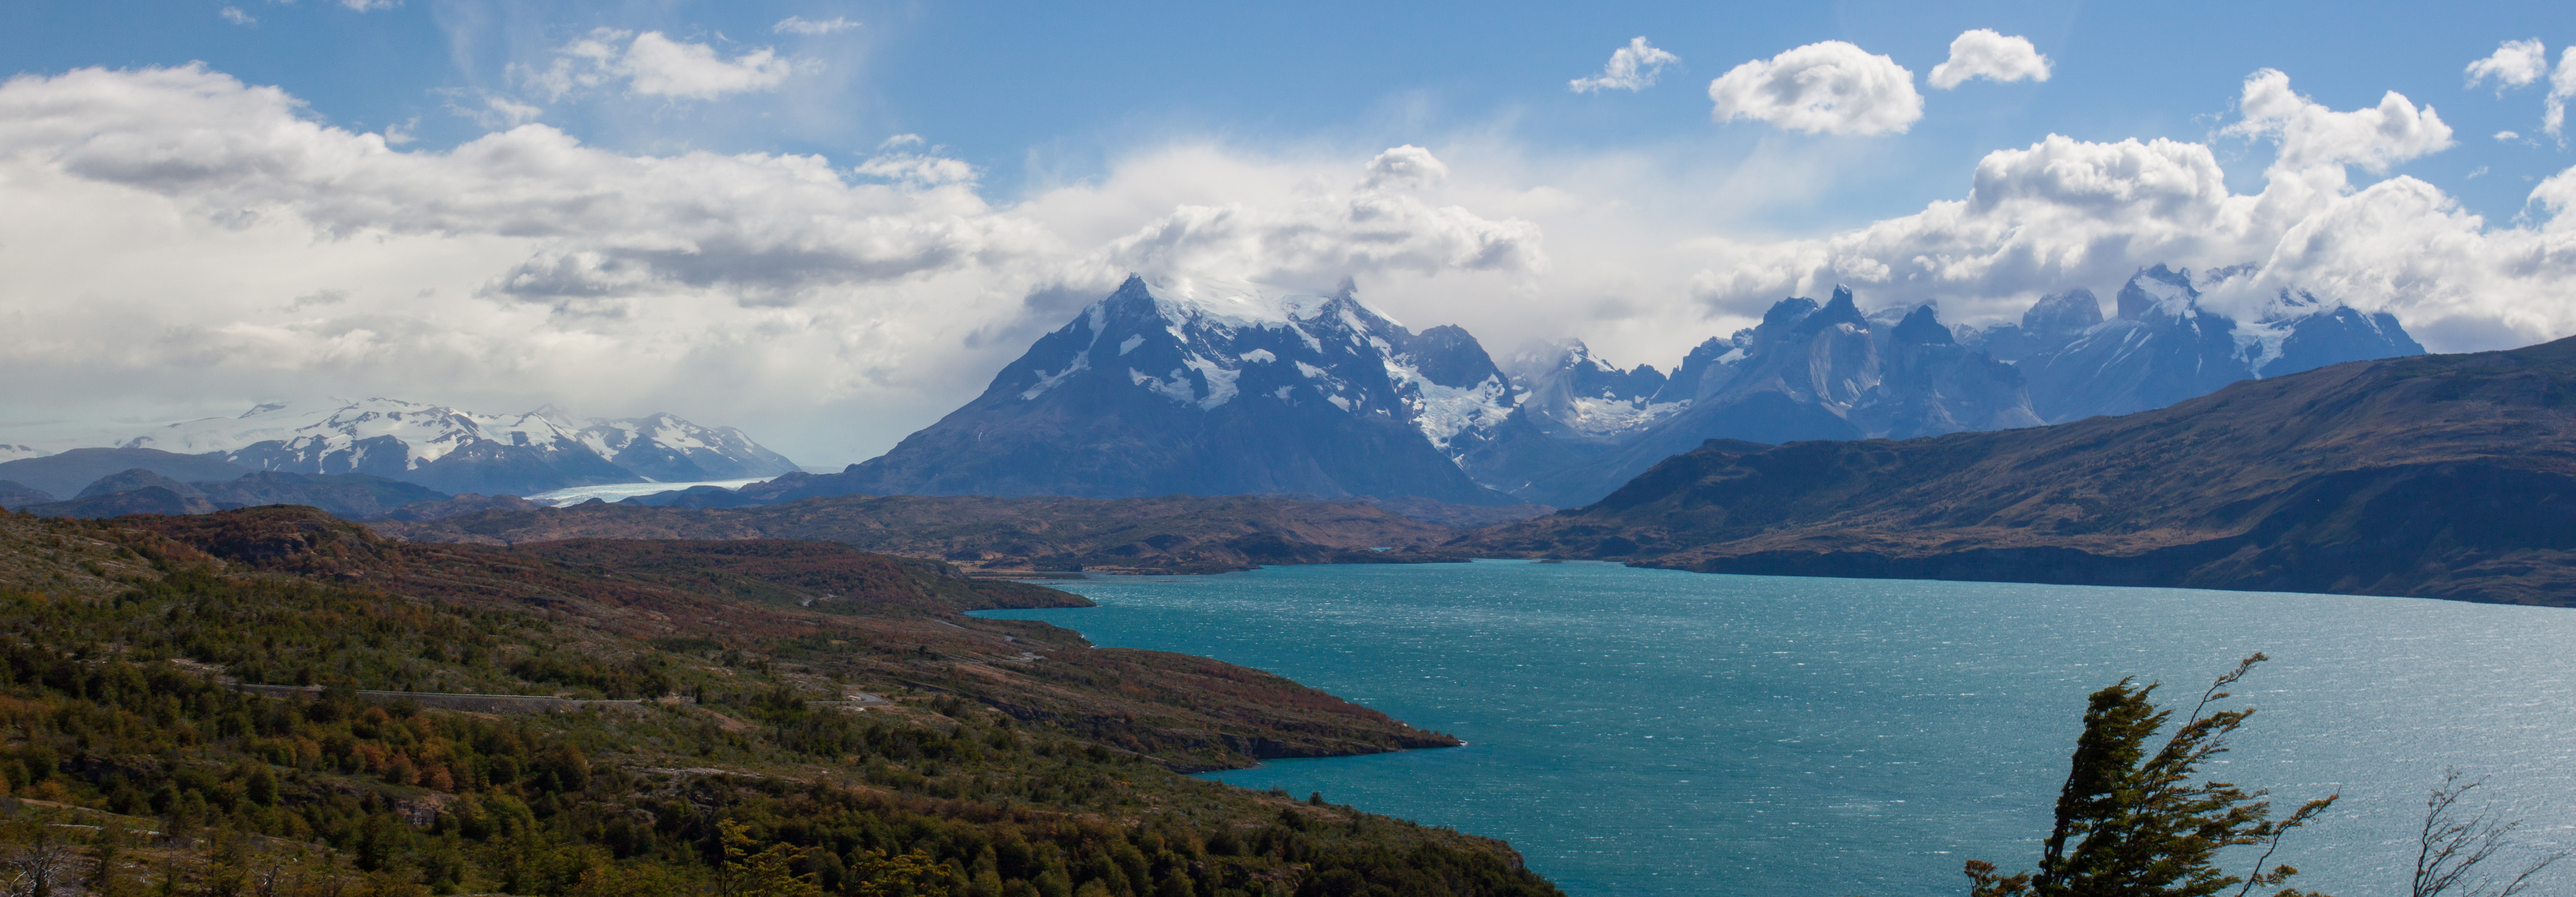 Torres del Paine on a typical gale force windy day.